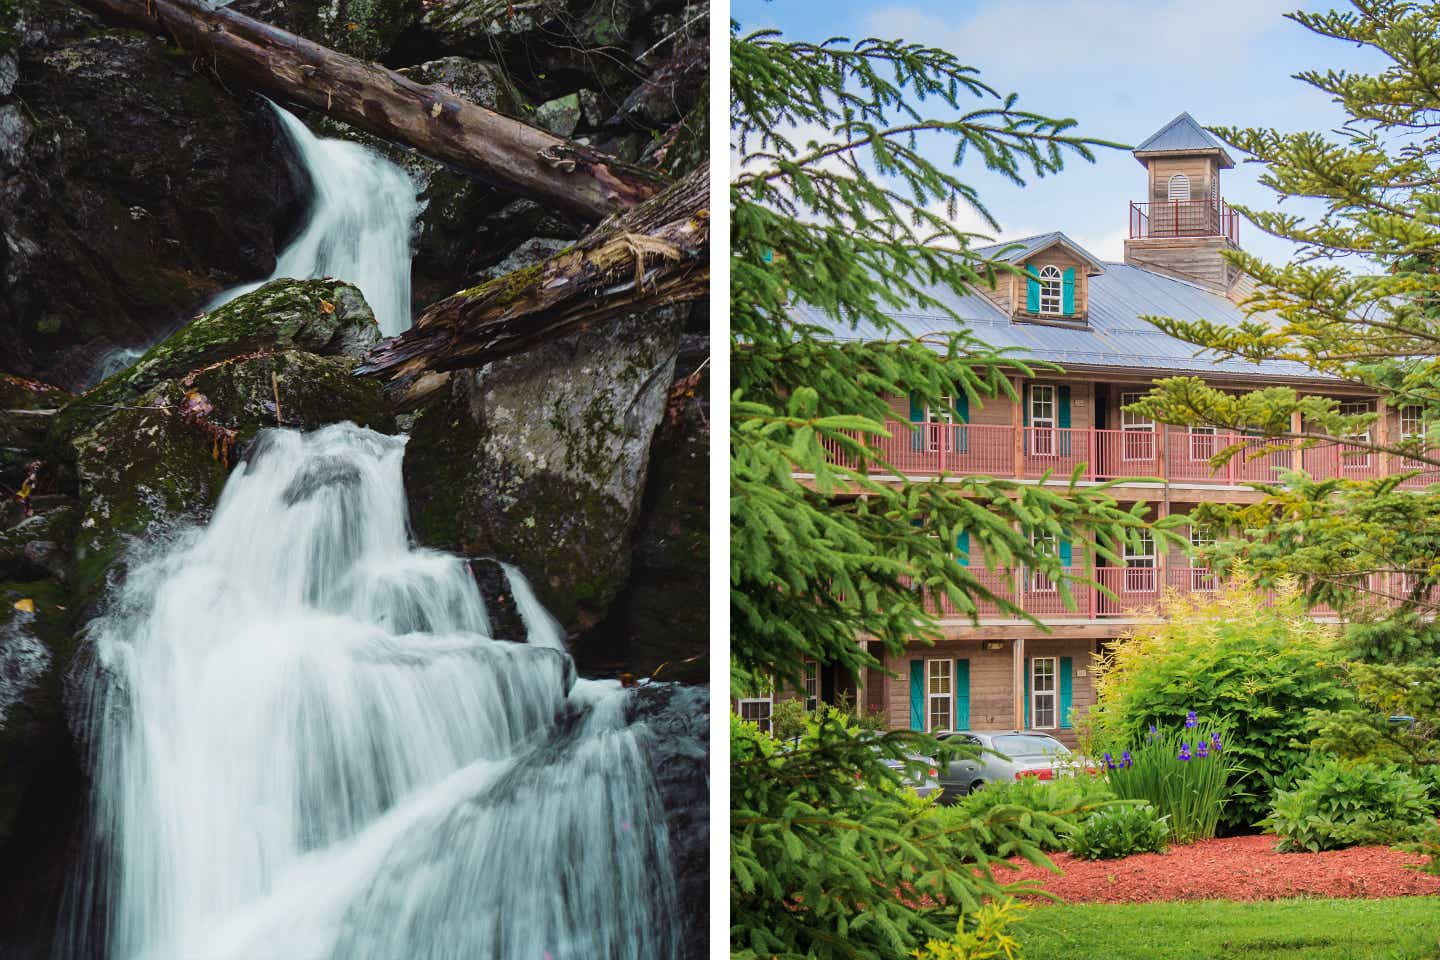 Left: A long-exposure shot of the Bish Bash Falls waterfall. Right: And exterior shot of our Oak n' Spruce Resort.